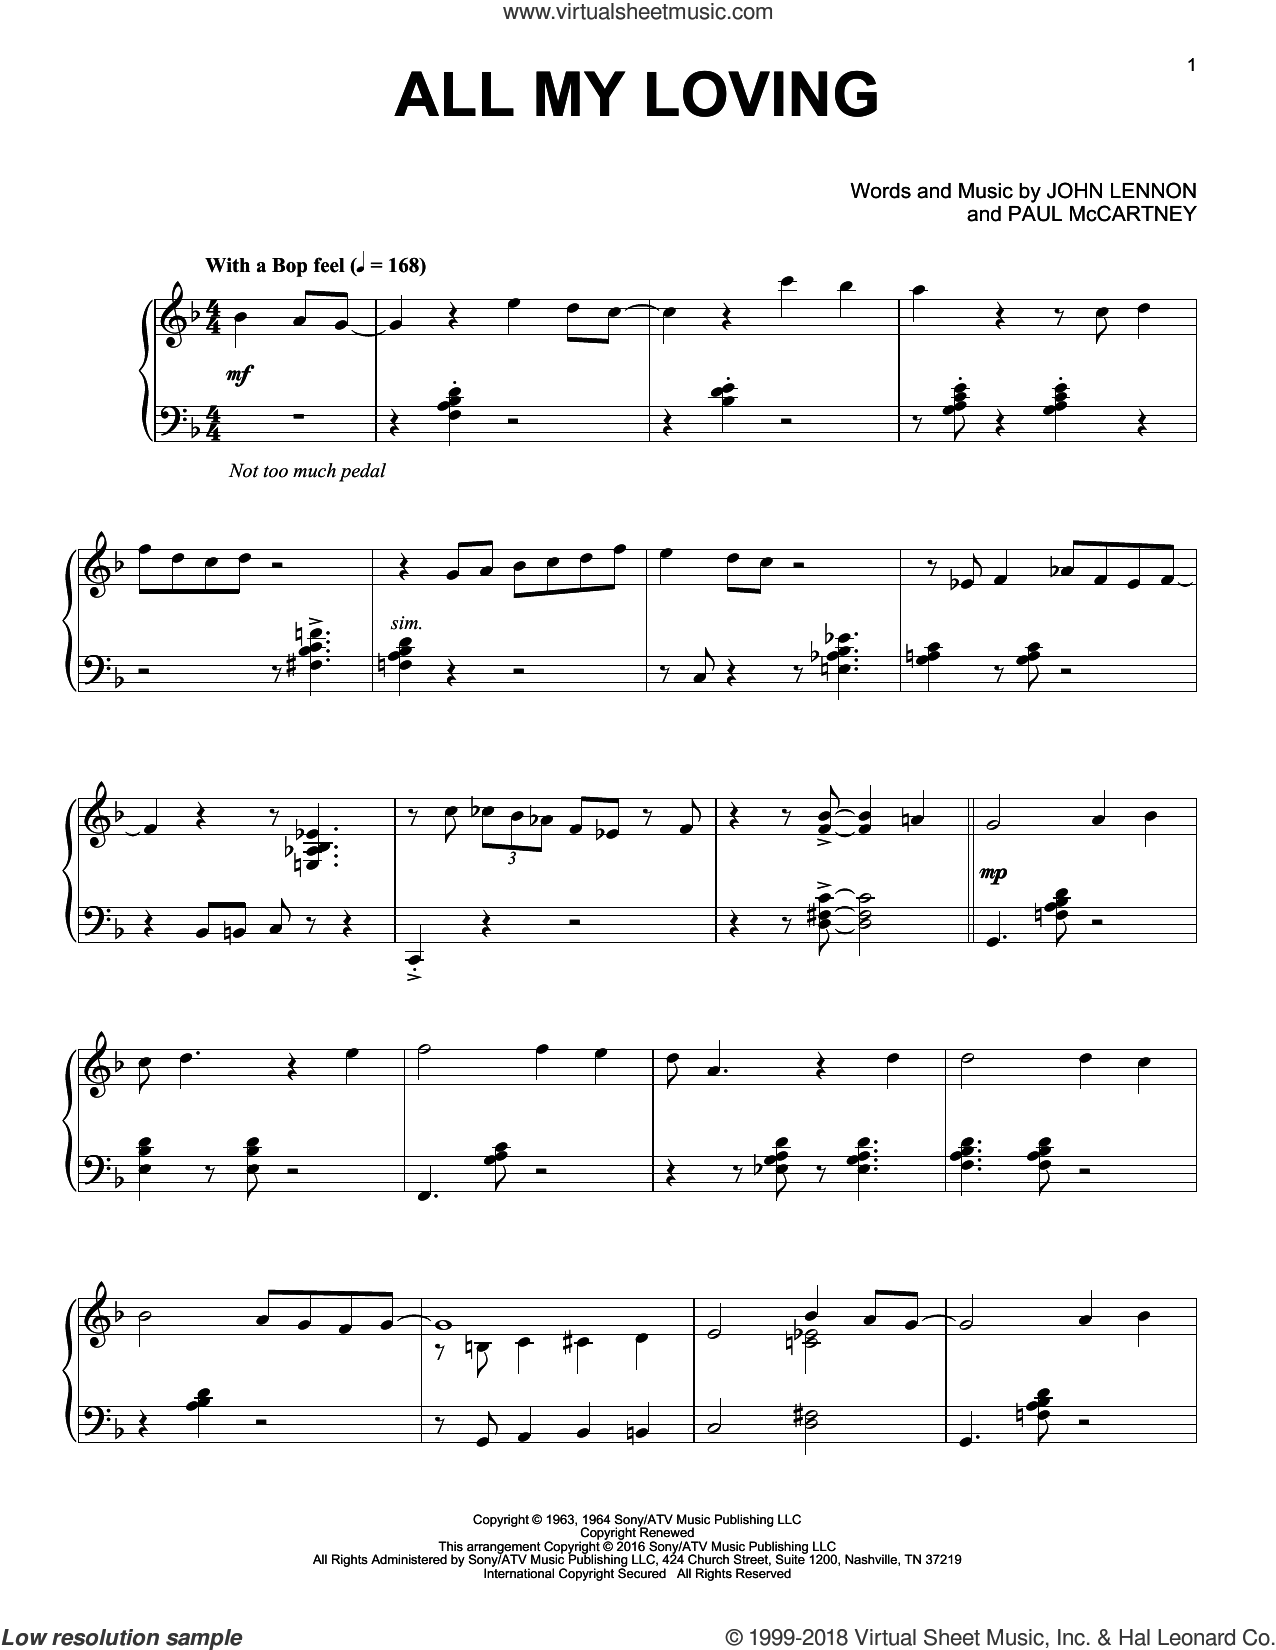 All My Loving [Jazz version] sheet music for piano solo by The Beatles, John Lennon and Paul McCartney, intermediate skill level